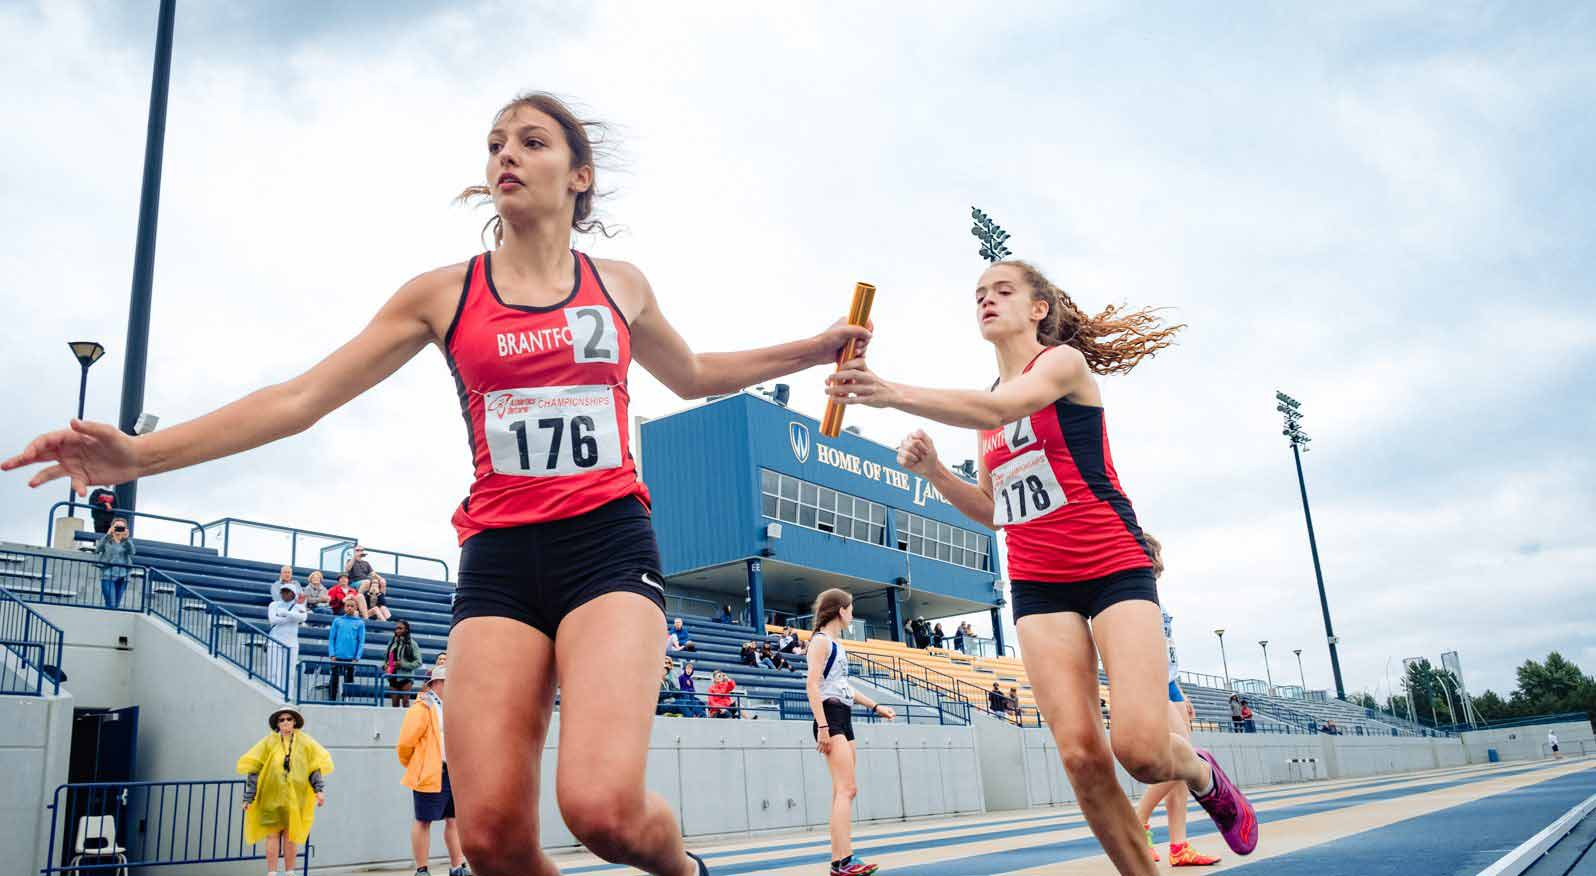 Athletes in an Athletics Ontario relay race pass off a baton